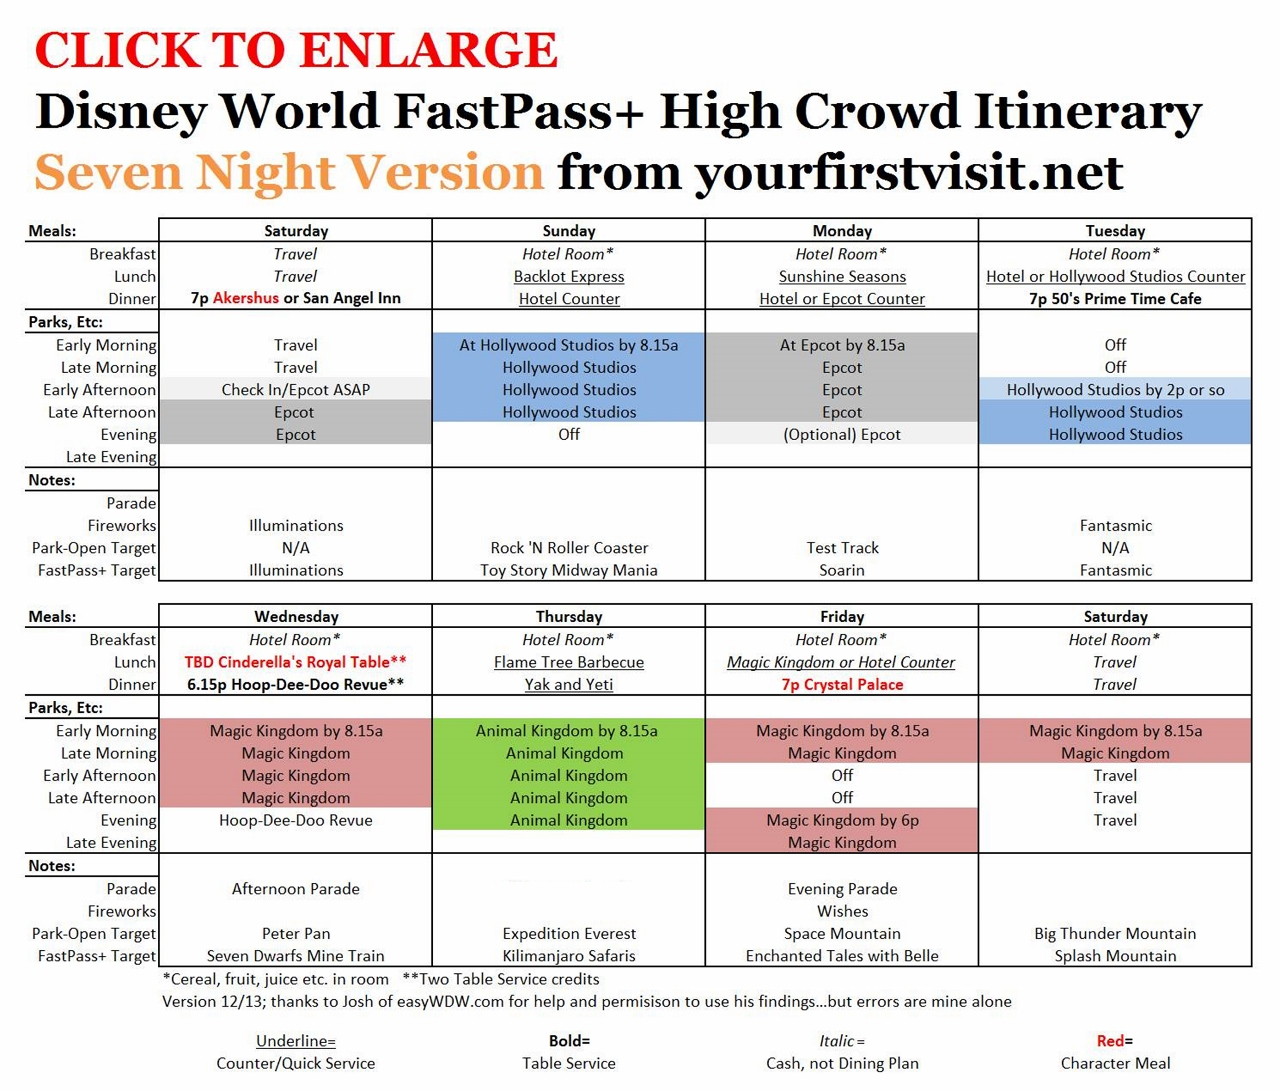 Seven Night FastPass+ Itinerary for High Crowd Weeks from yourfirstvisit.net v4